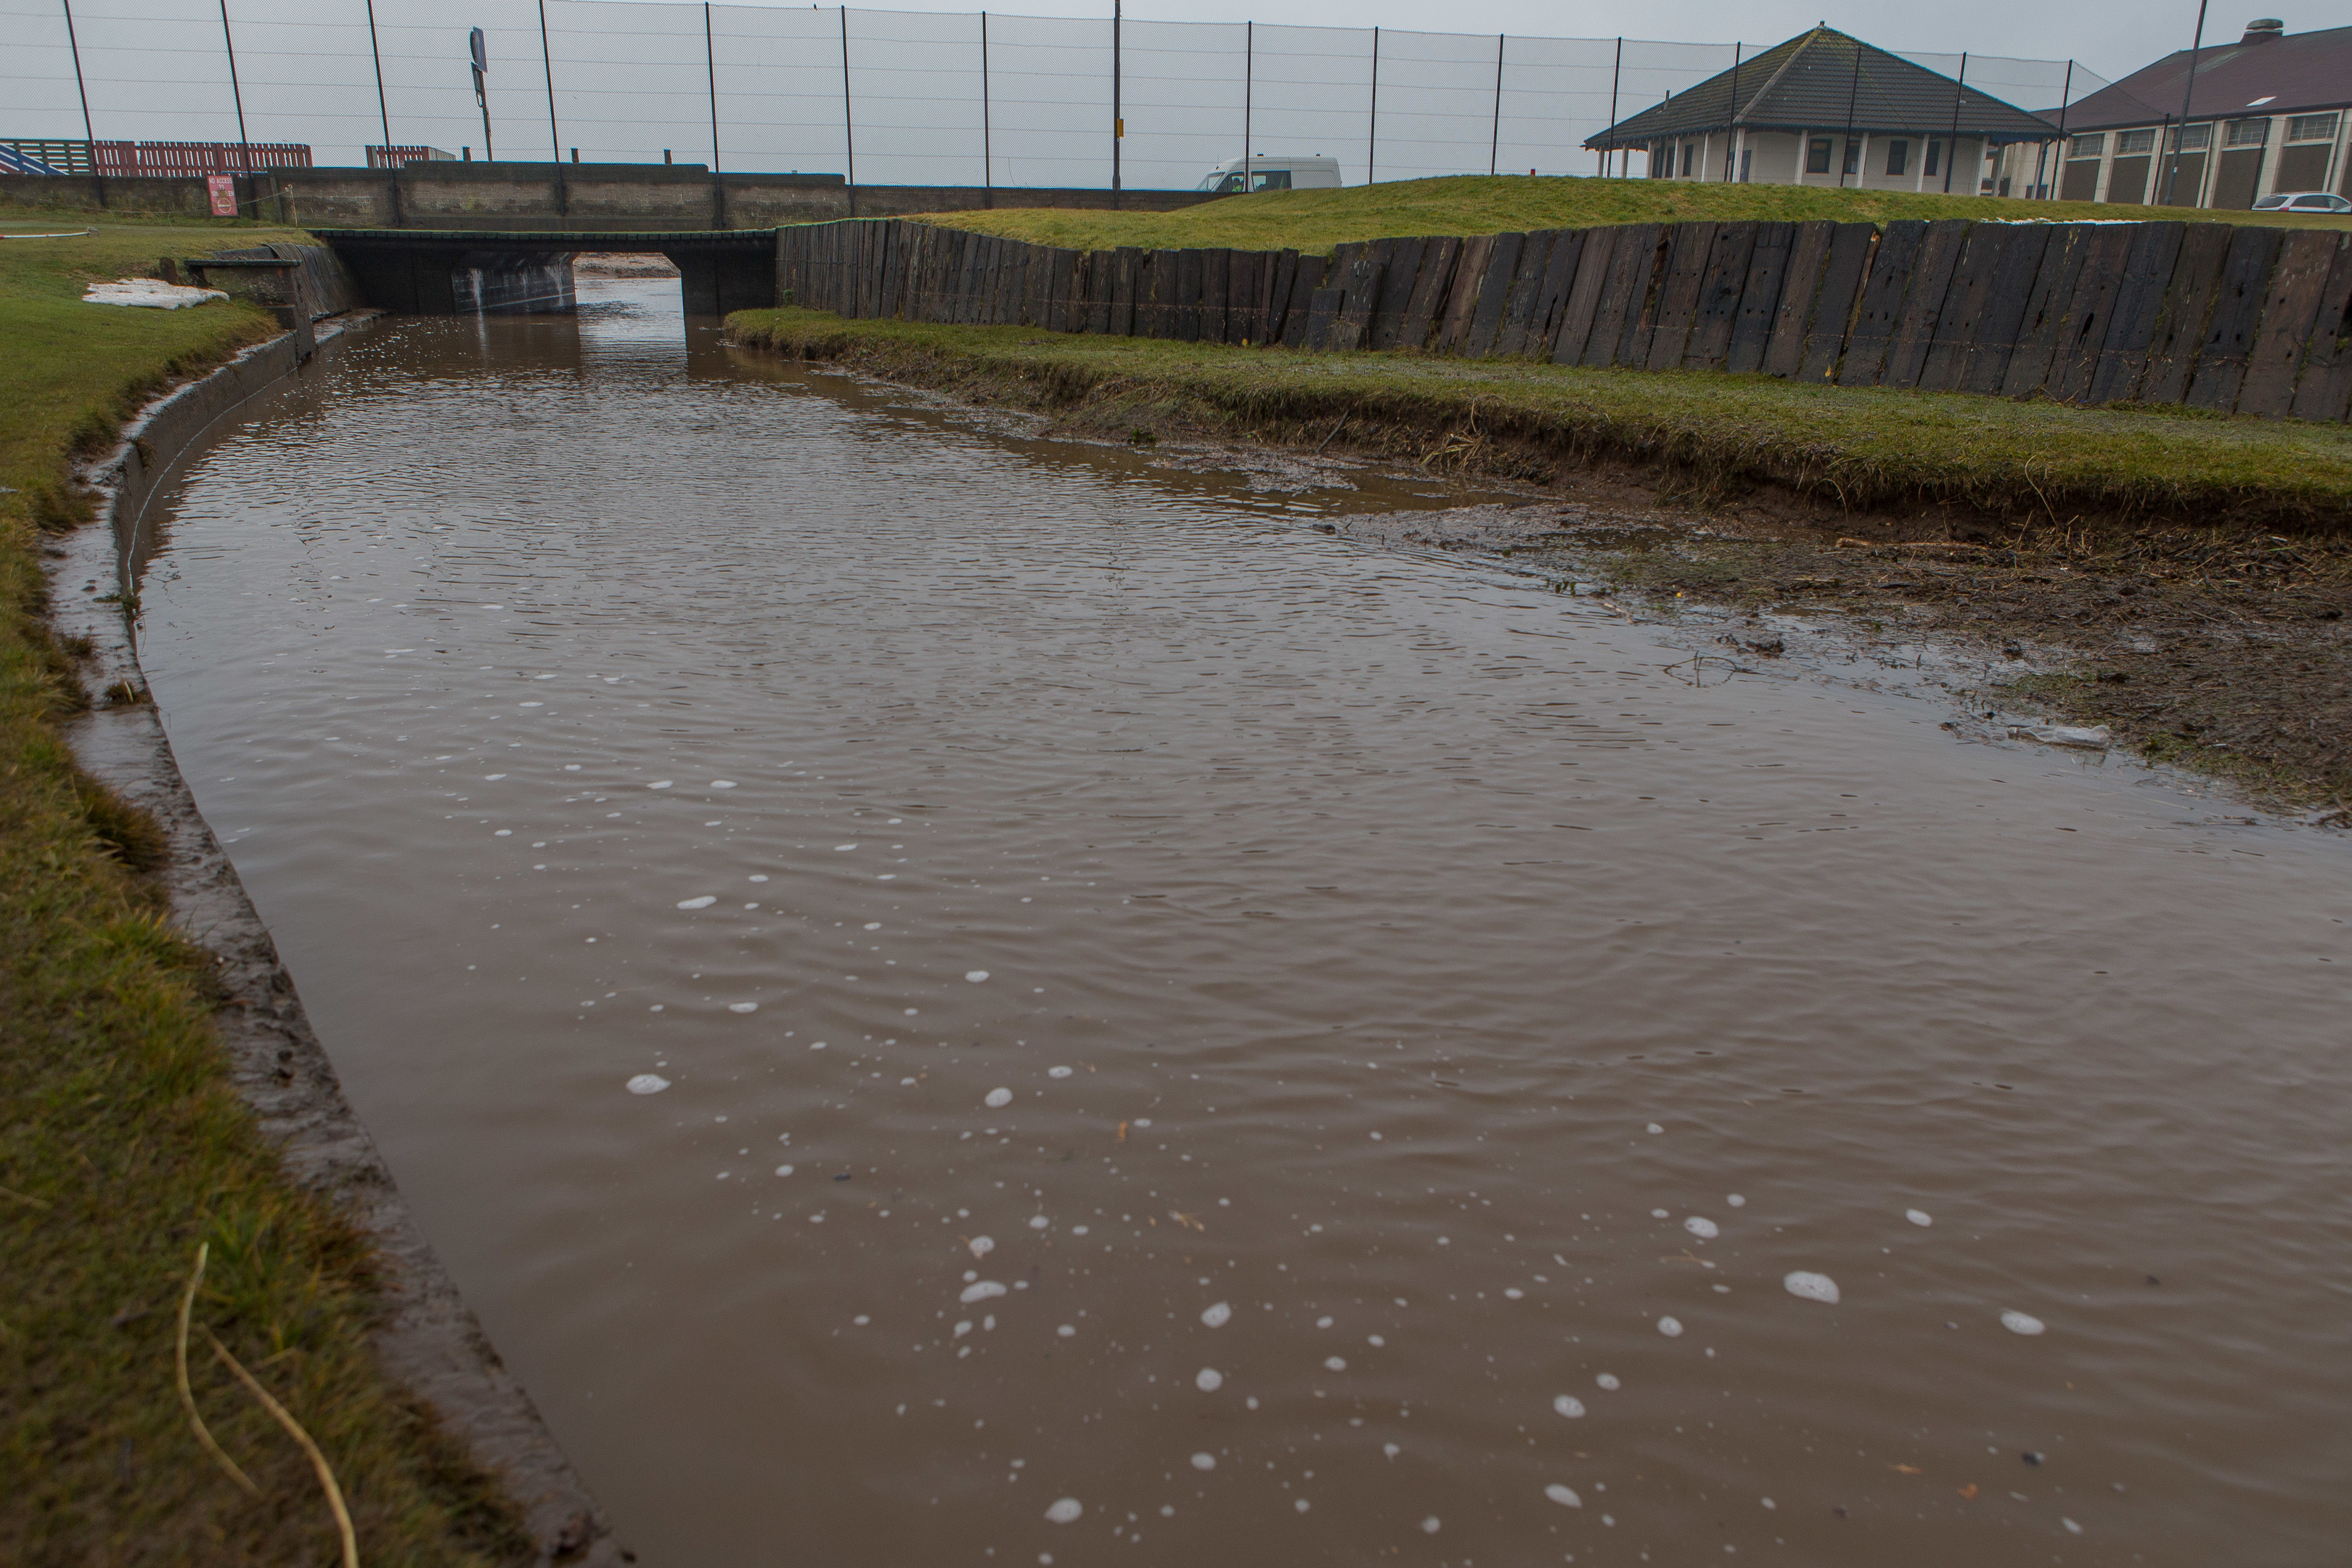 Locals have been urged to stay clear of the river.